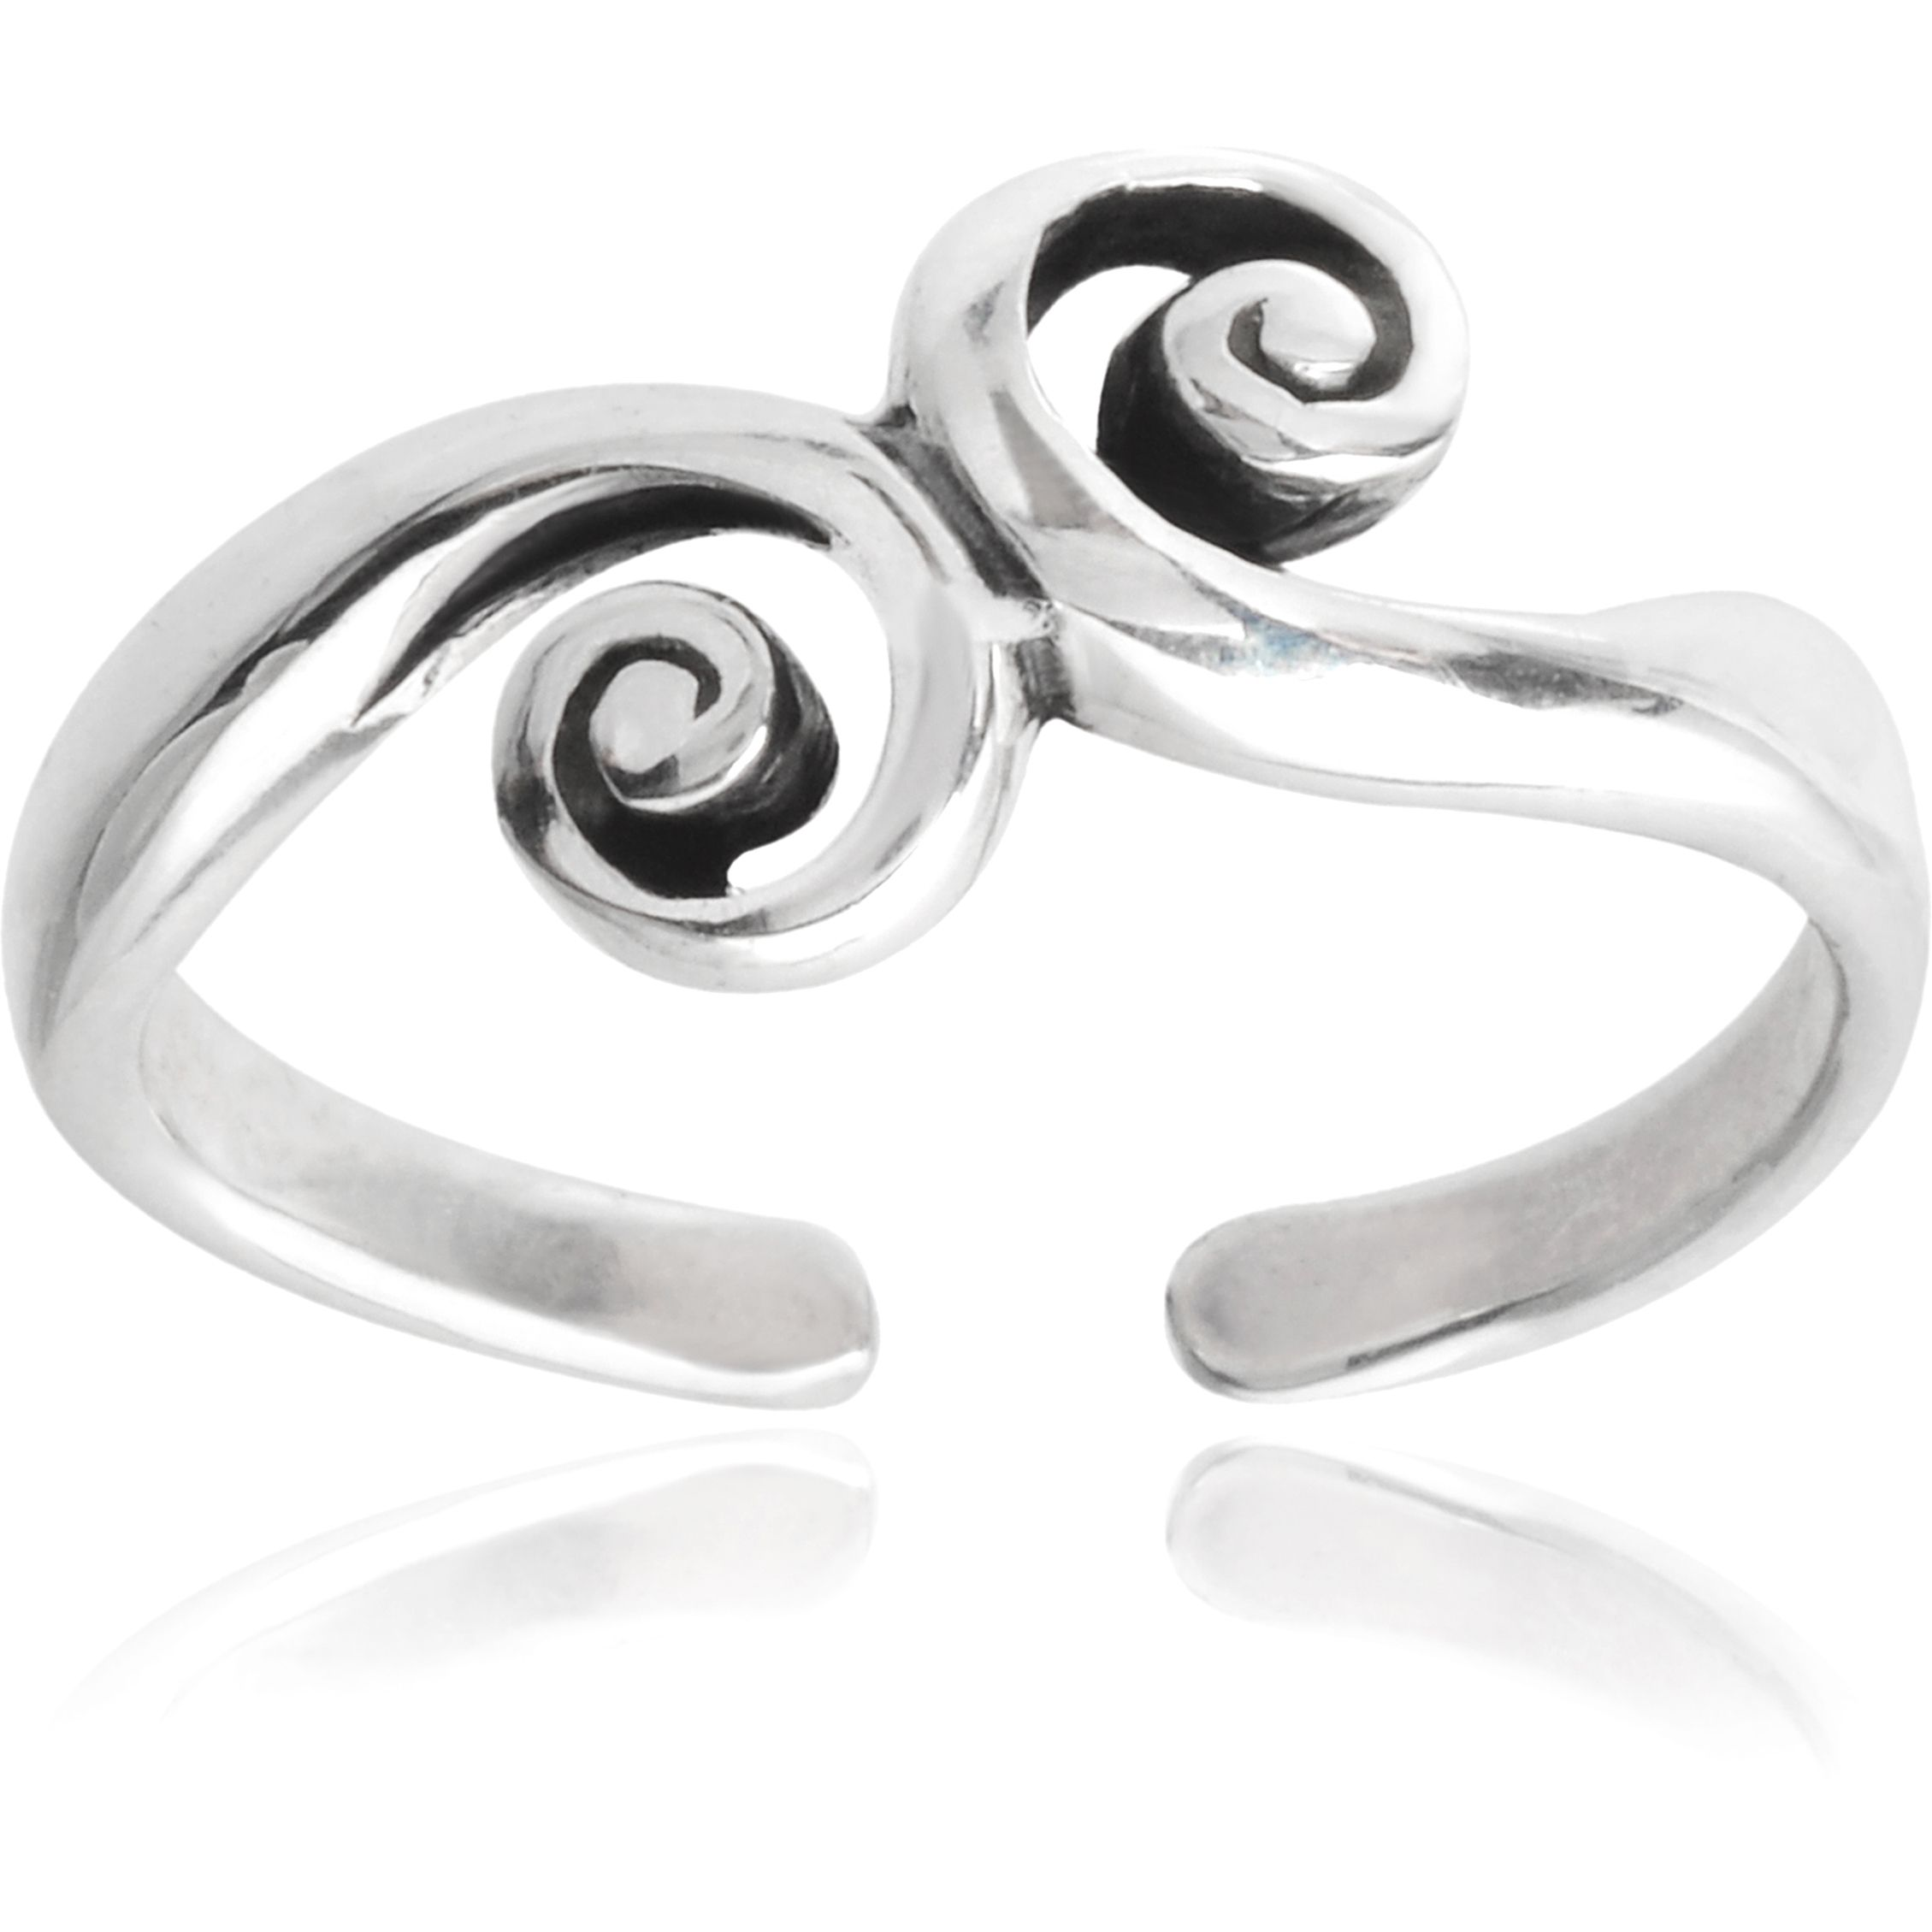 Journee Collection Sterling Silver Swirl Toe Ring (Silver), Women's, White, Size 2